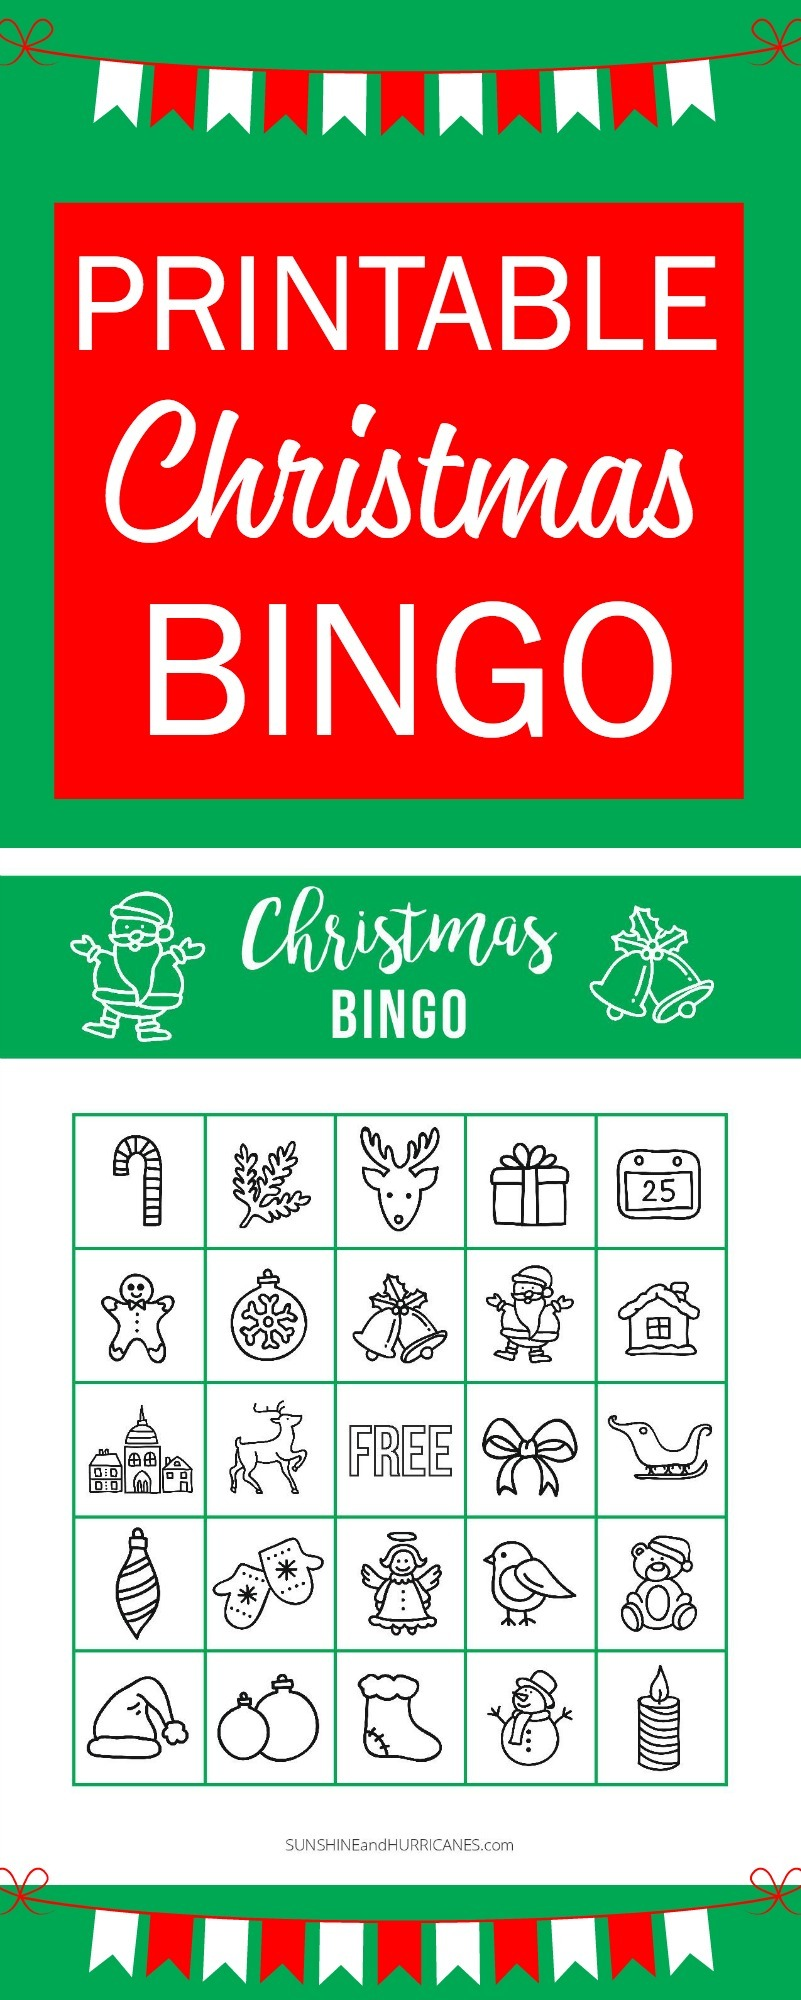 photograph regarding Holiday Bingo Printable named Printable Xmas BINGO - Getaway Video games for Youngsters